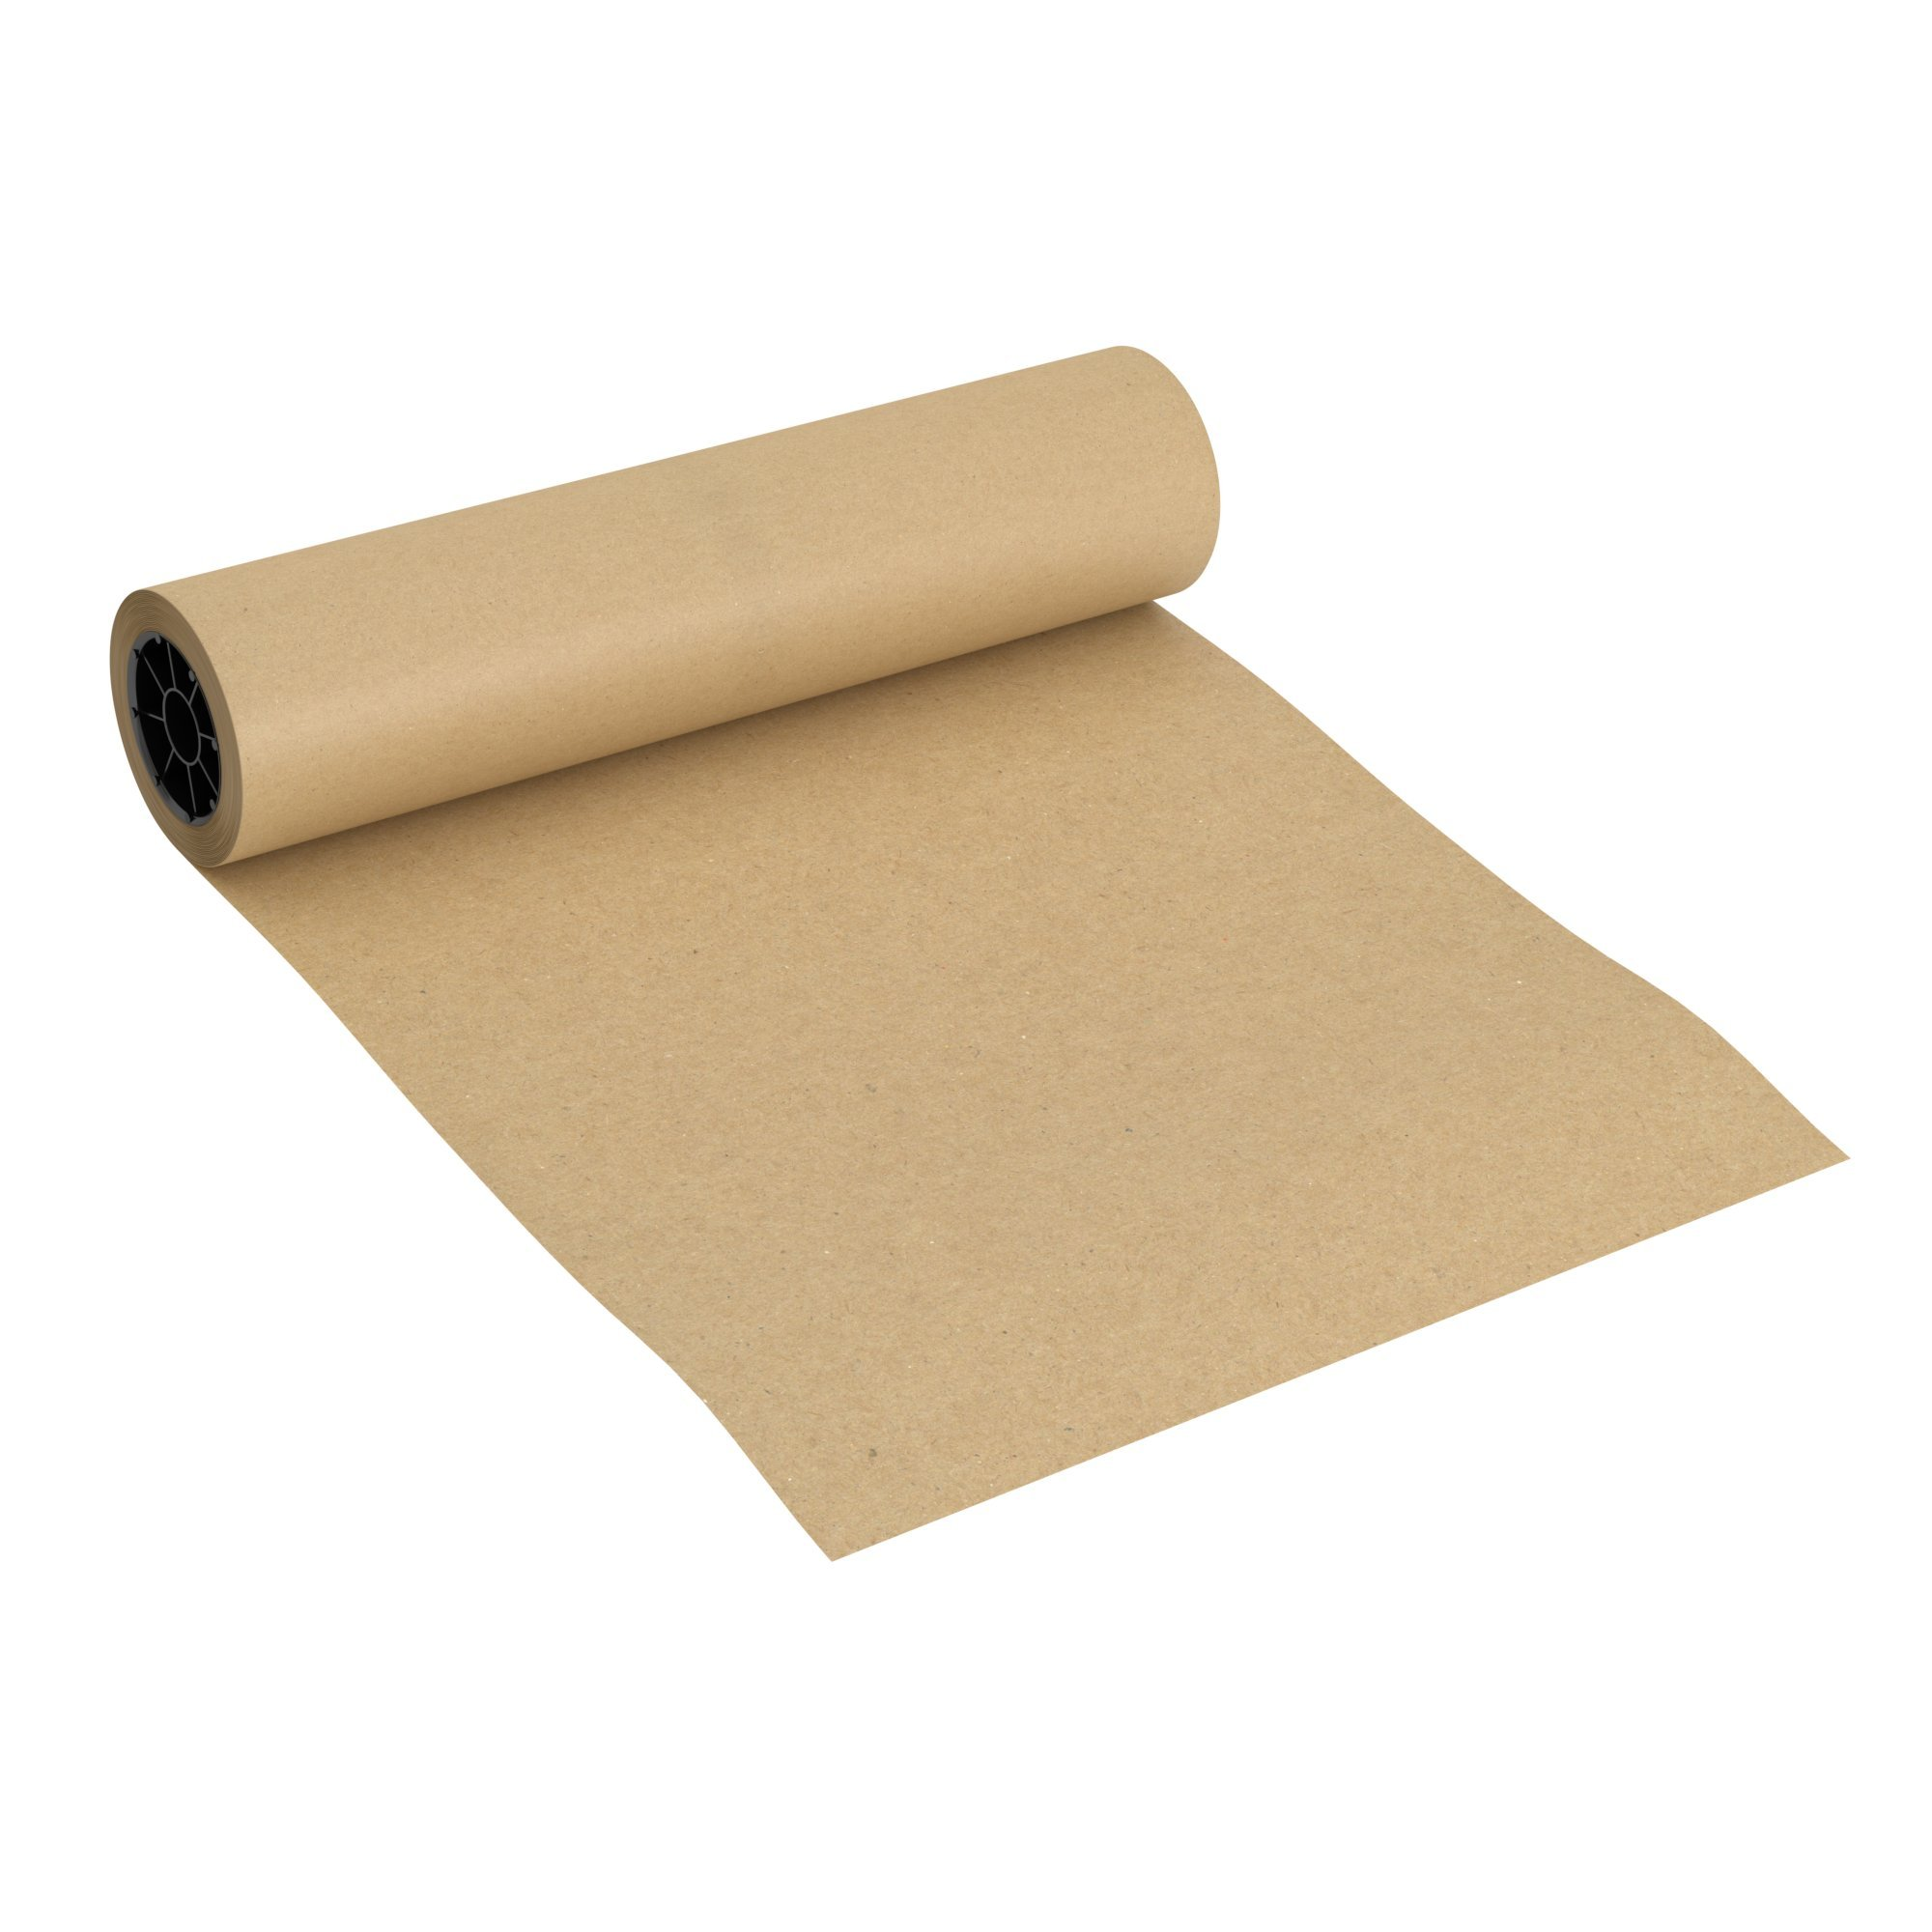 Brown Jumbo Kraft Paper Roll - 18'' x 2100'' (175') Made in The USA - Ideal for Packing, Moving, Gift Wrapping, Postal, Shipping, Parcel, Wall Art, Crafts, Bulletin Boards, Floor Covering, Table Runner by Bryco Goods